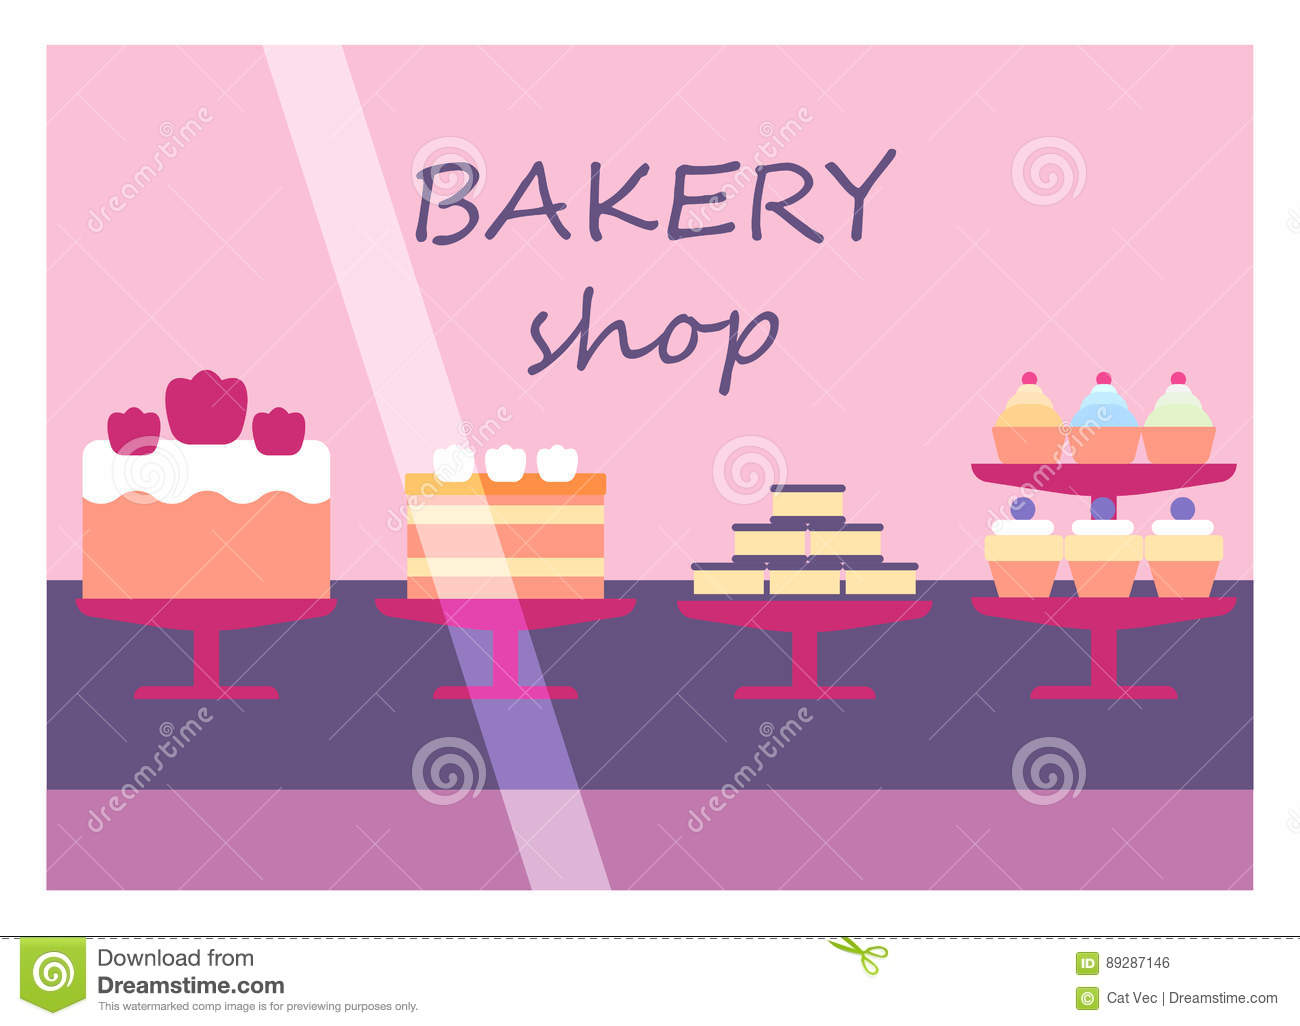 Flat Design Restaurant Bakery Shop Facade Icon Store Modern Awning Architecture Window Exterior And Market Front Urban Stock Vector Illustration Of Cupcake Cake 89287146